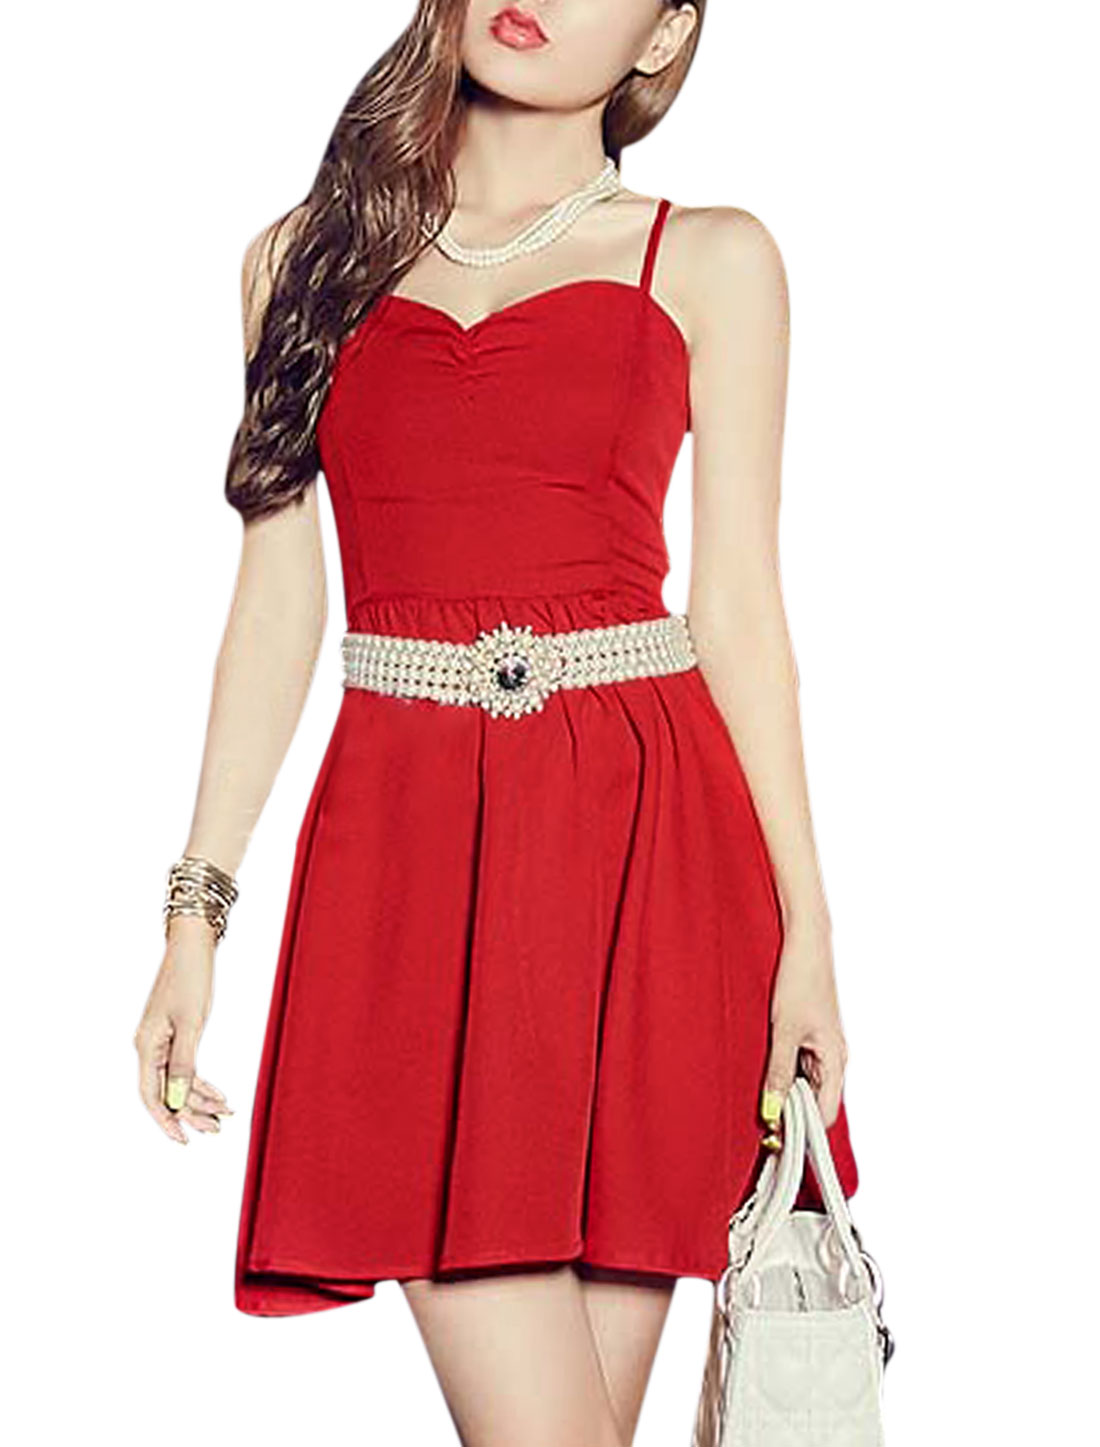 Ladies Sleeveless Sweetheart Neckline Spaghetti Strap Lace Up Back Dress Red XS